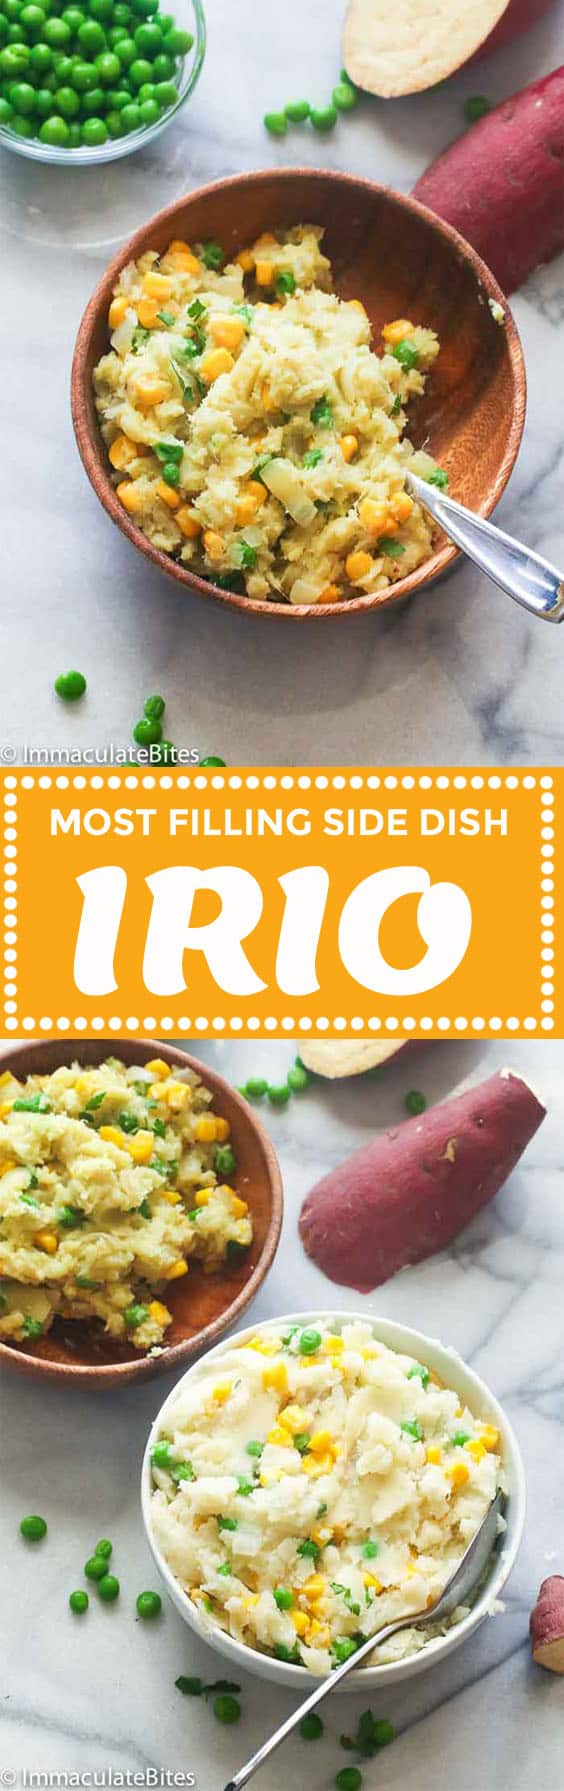 Irio (Mashed Sweet Potatoes with peas and corn)